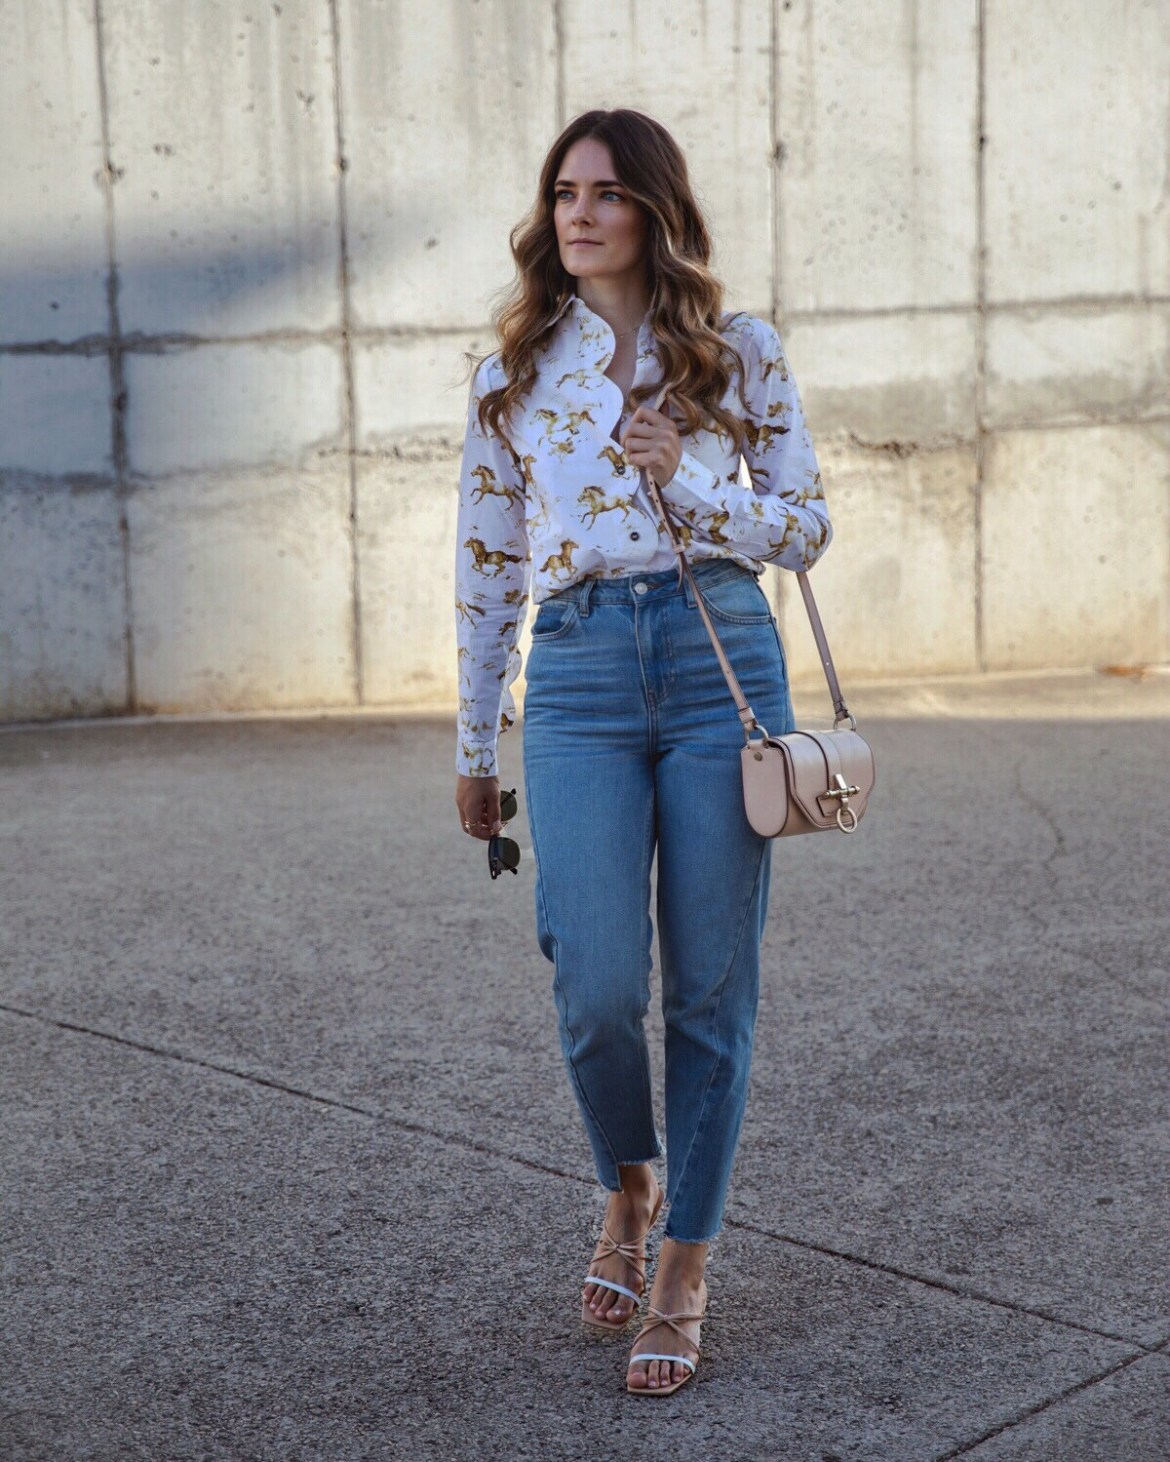 Ganni horse print shirt outfit with jeans and By Far sandal heels from Shopbop worn by fashion blogger Jenelle Witty from Australian blog Inspiring Wit